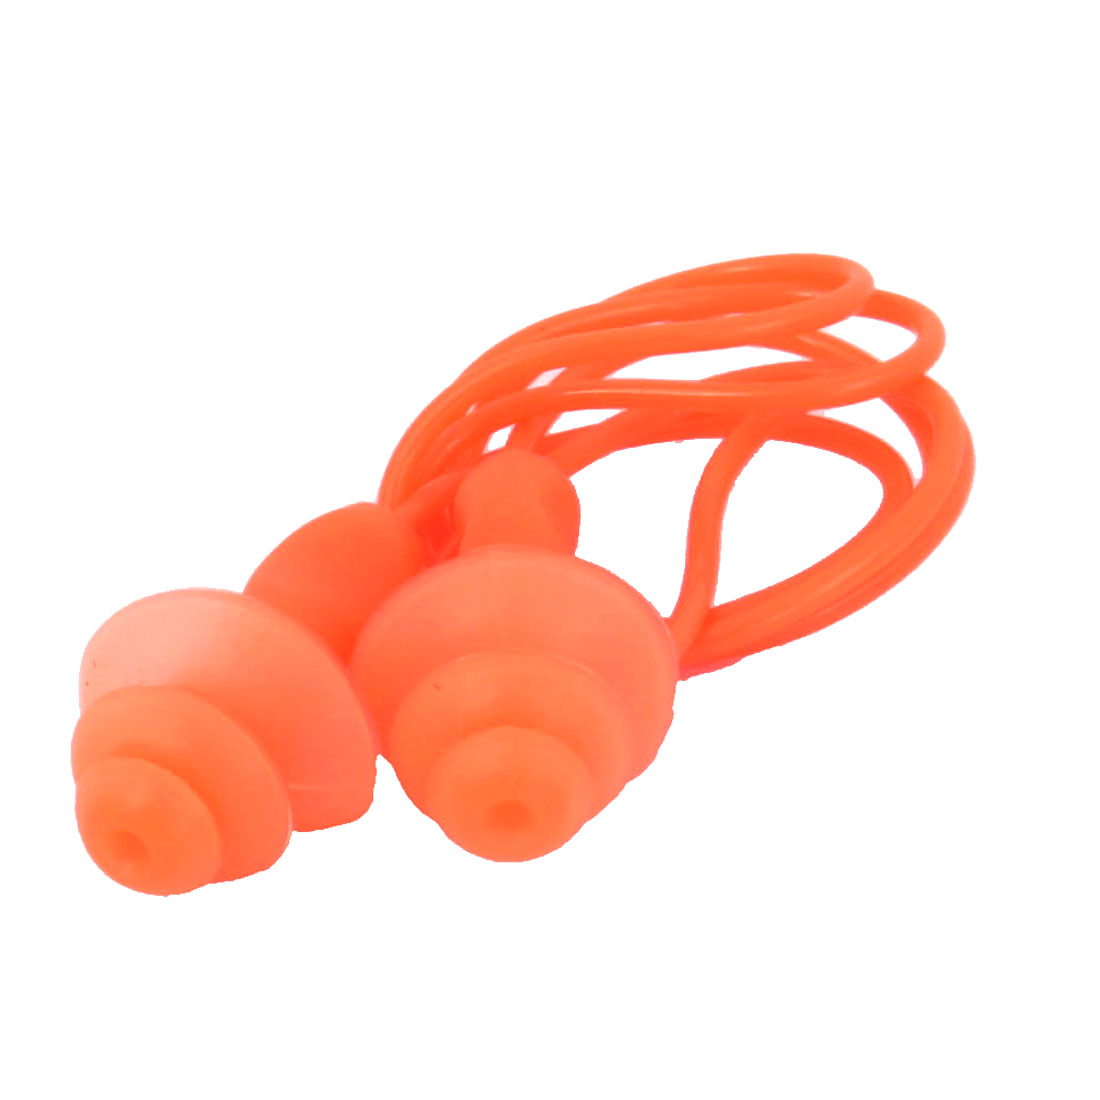 Swimming Sleeping Orange Silicone Earplugs 55cm Long String